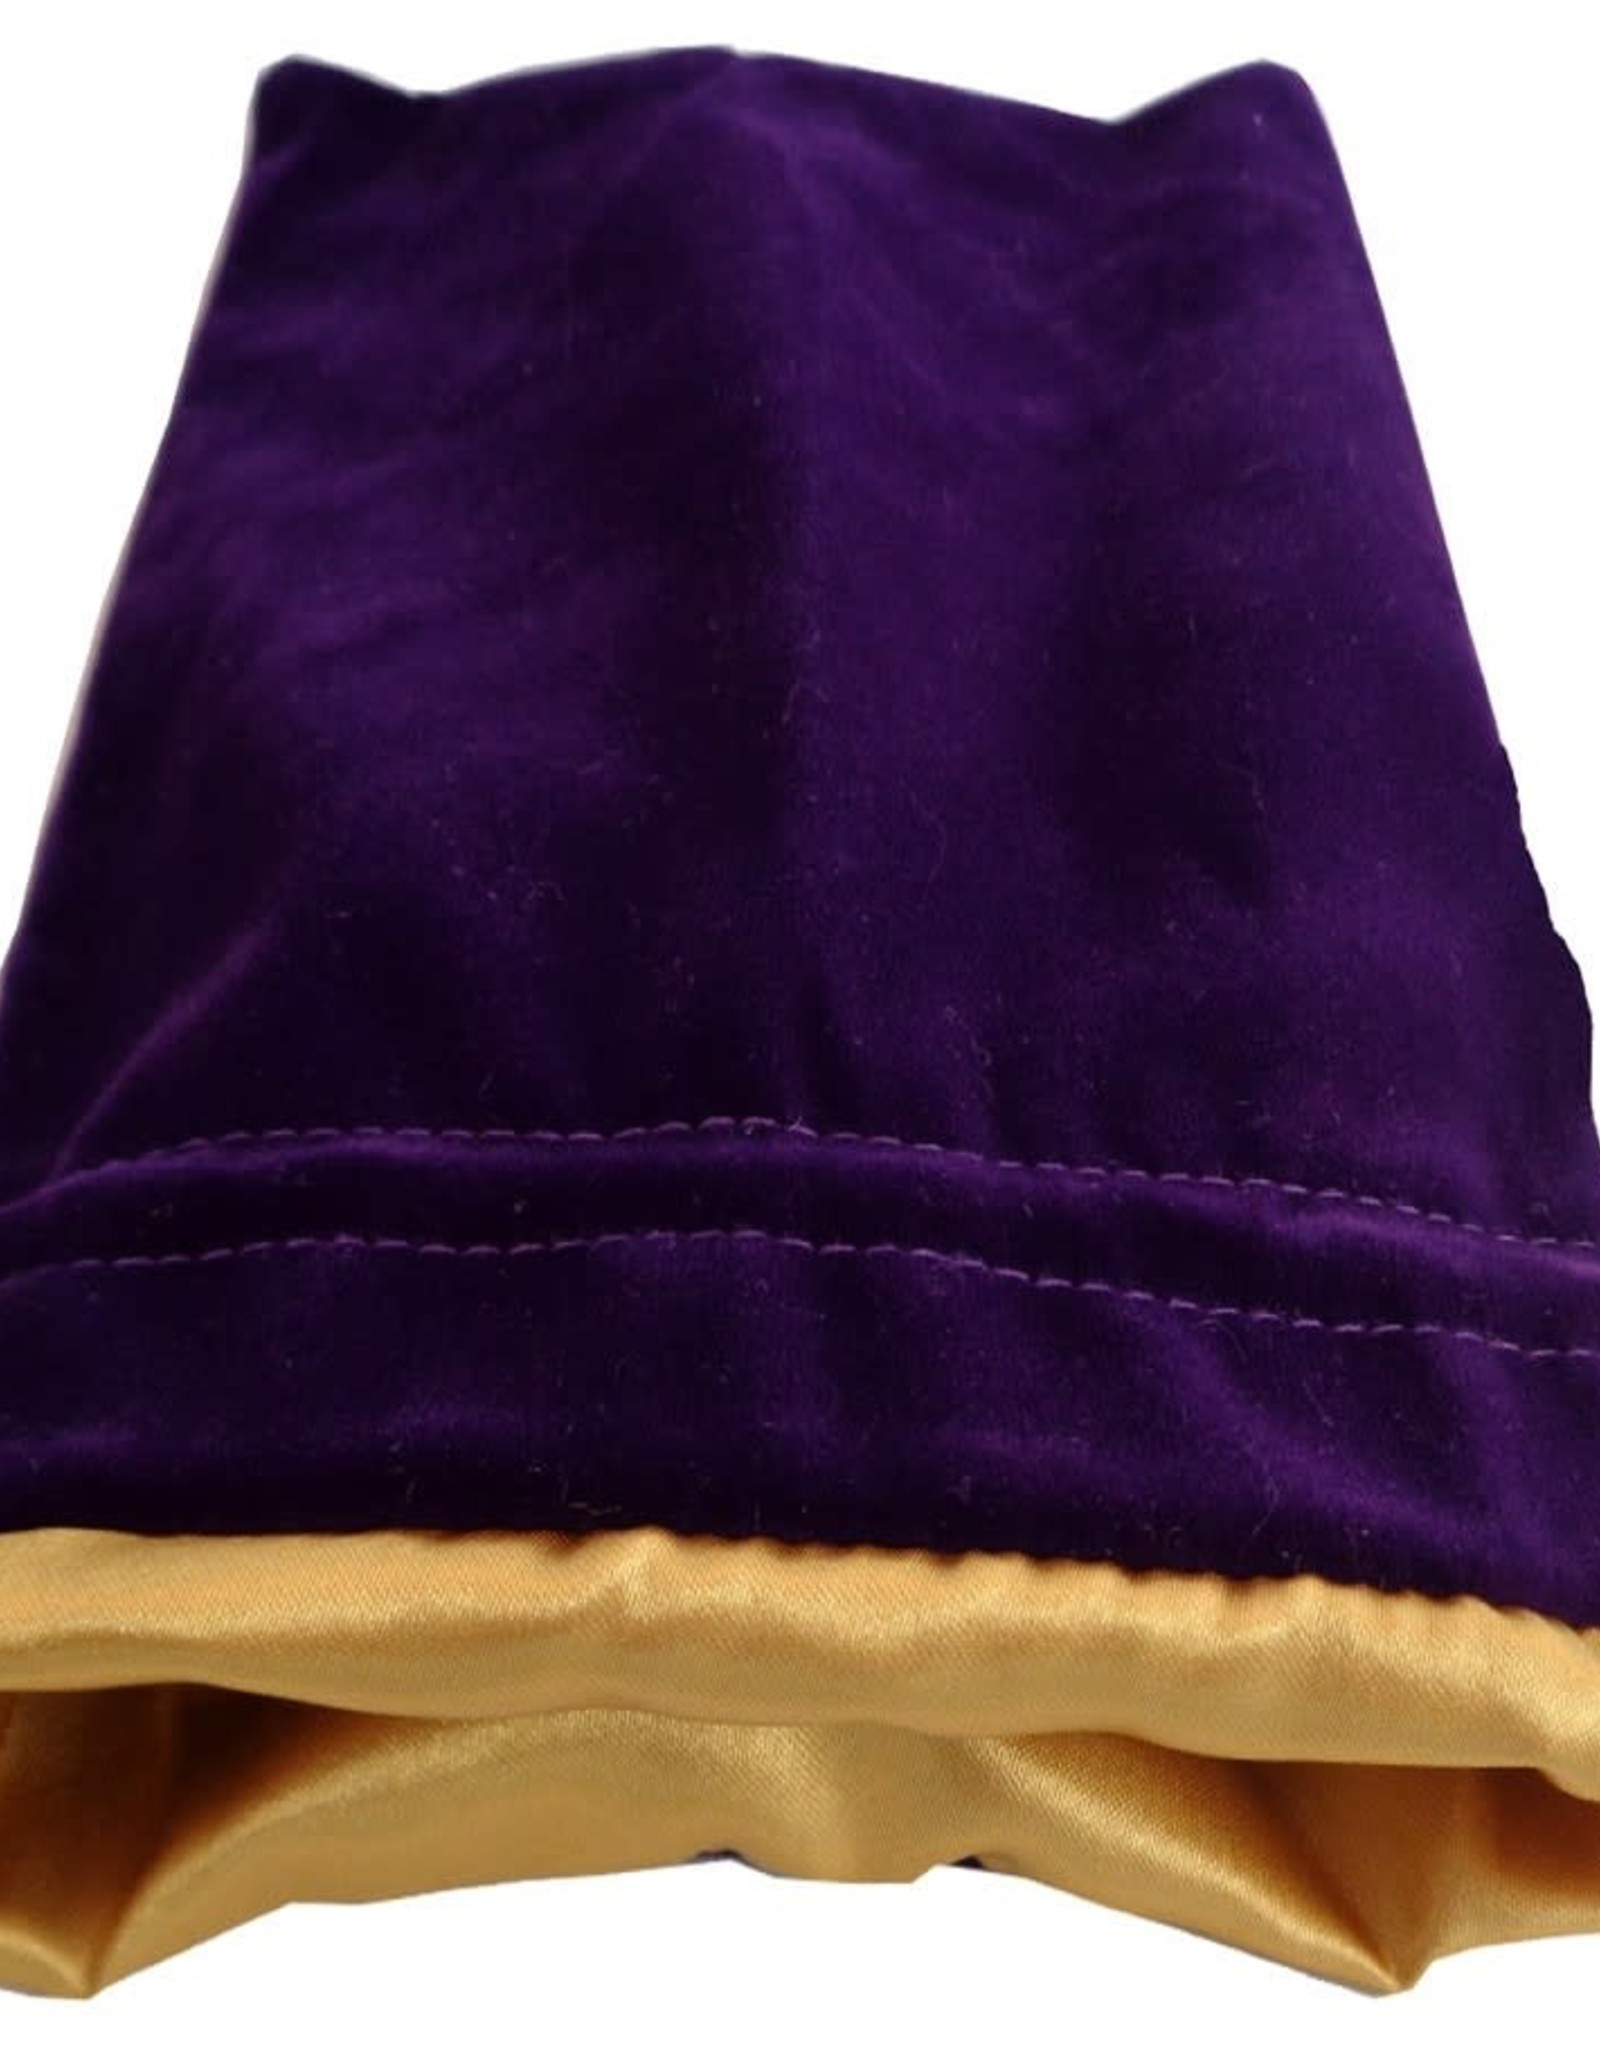 Metallic Dice Games Dice Bag: 6in x 8in LARGE Purple Velvet with Gold Satin Lining